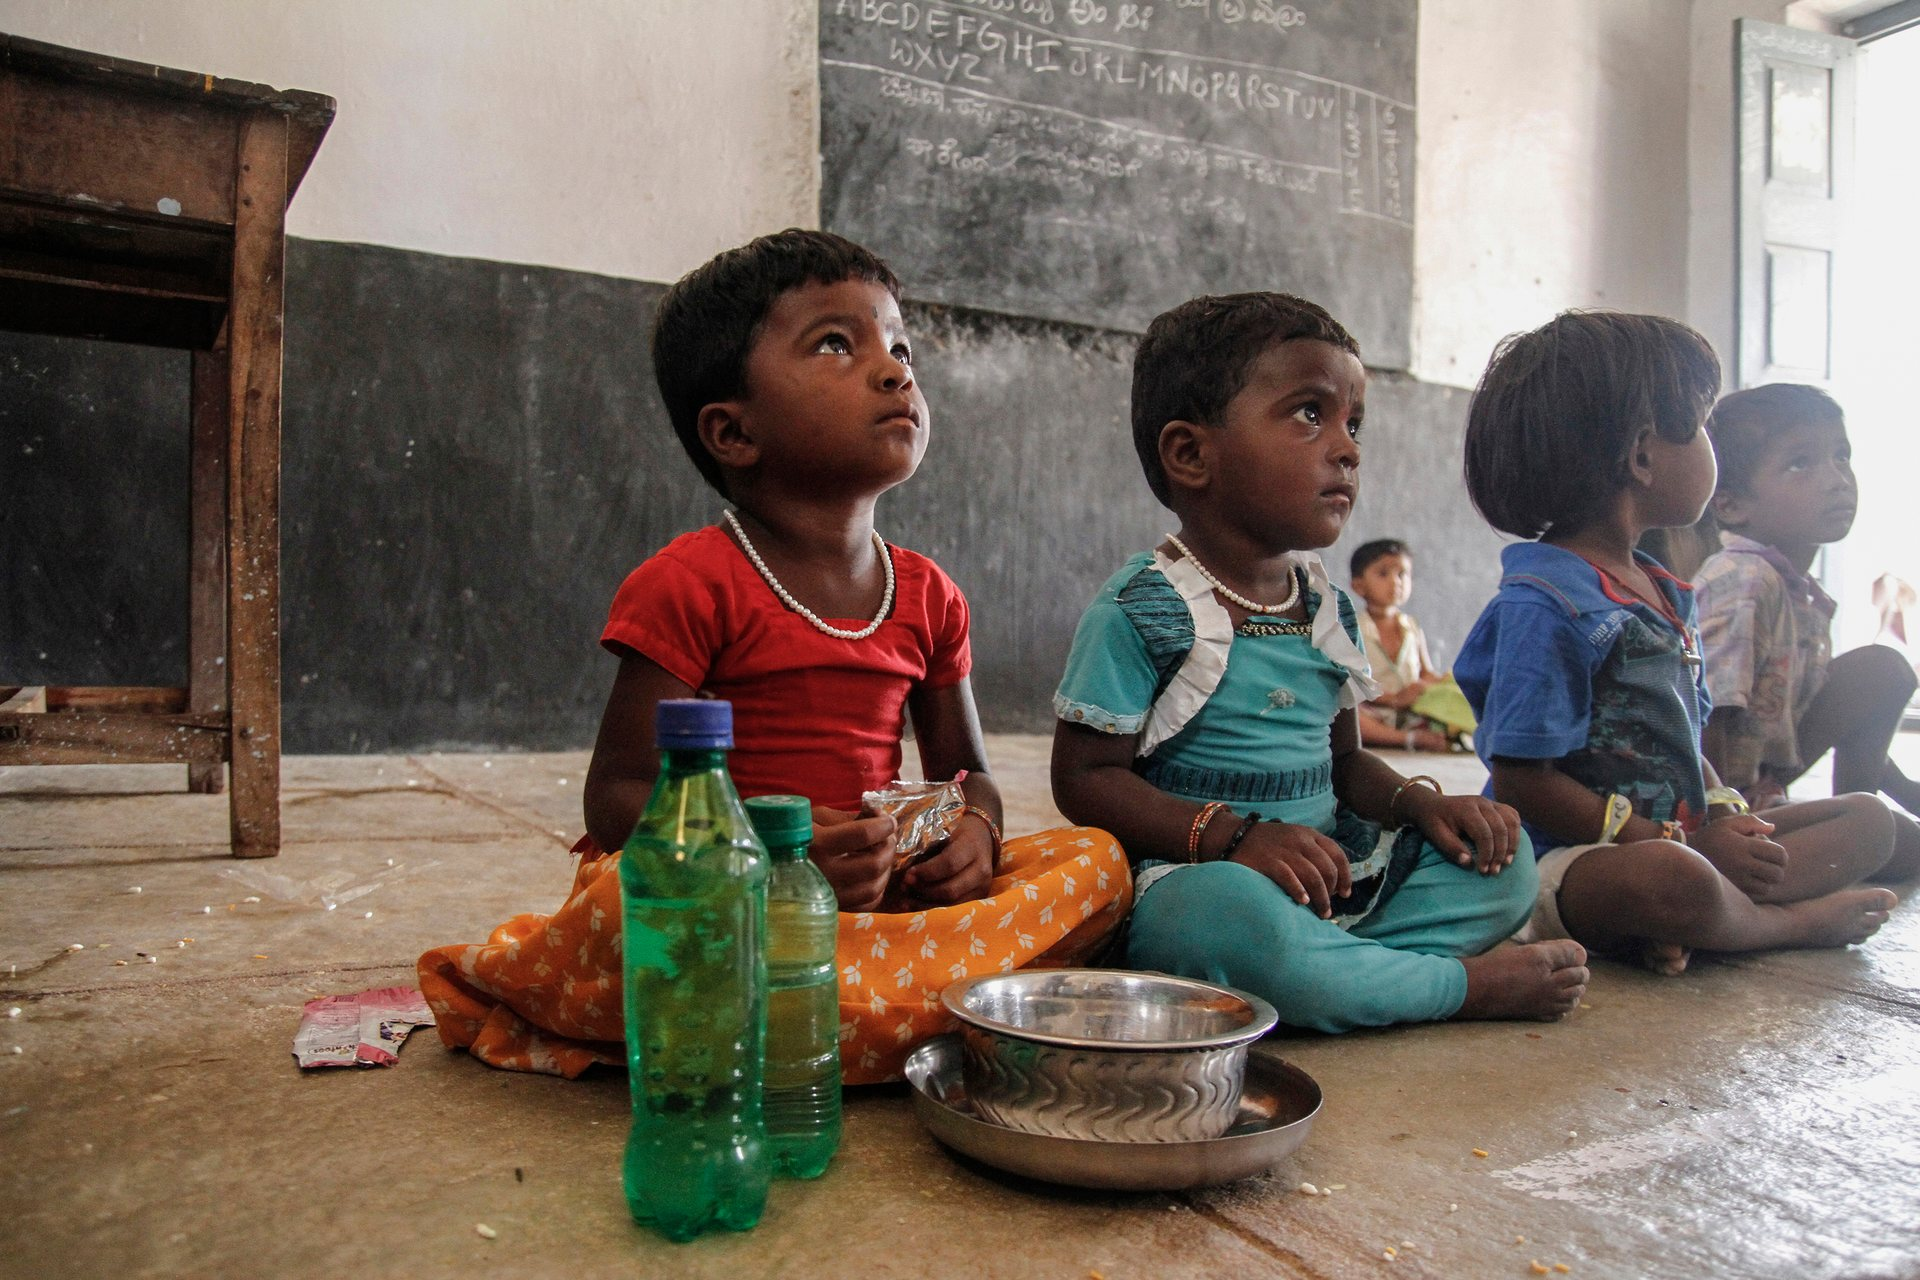 A child development centre in India, set up by the government in an effort to tackle malnutrition. Photograph: Ronny Sen/WaterAid